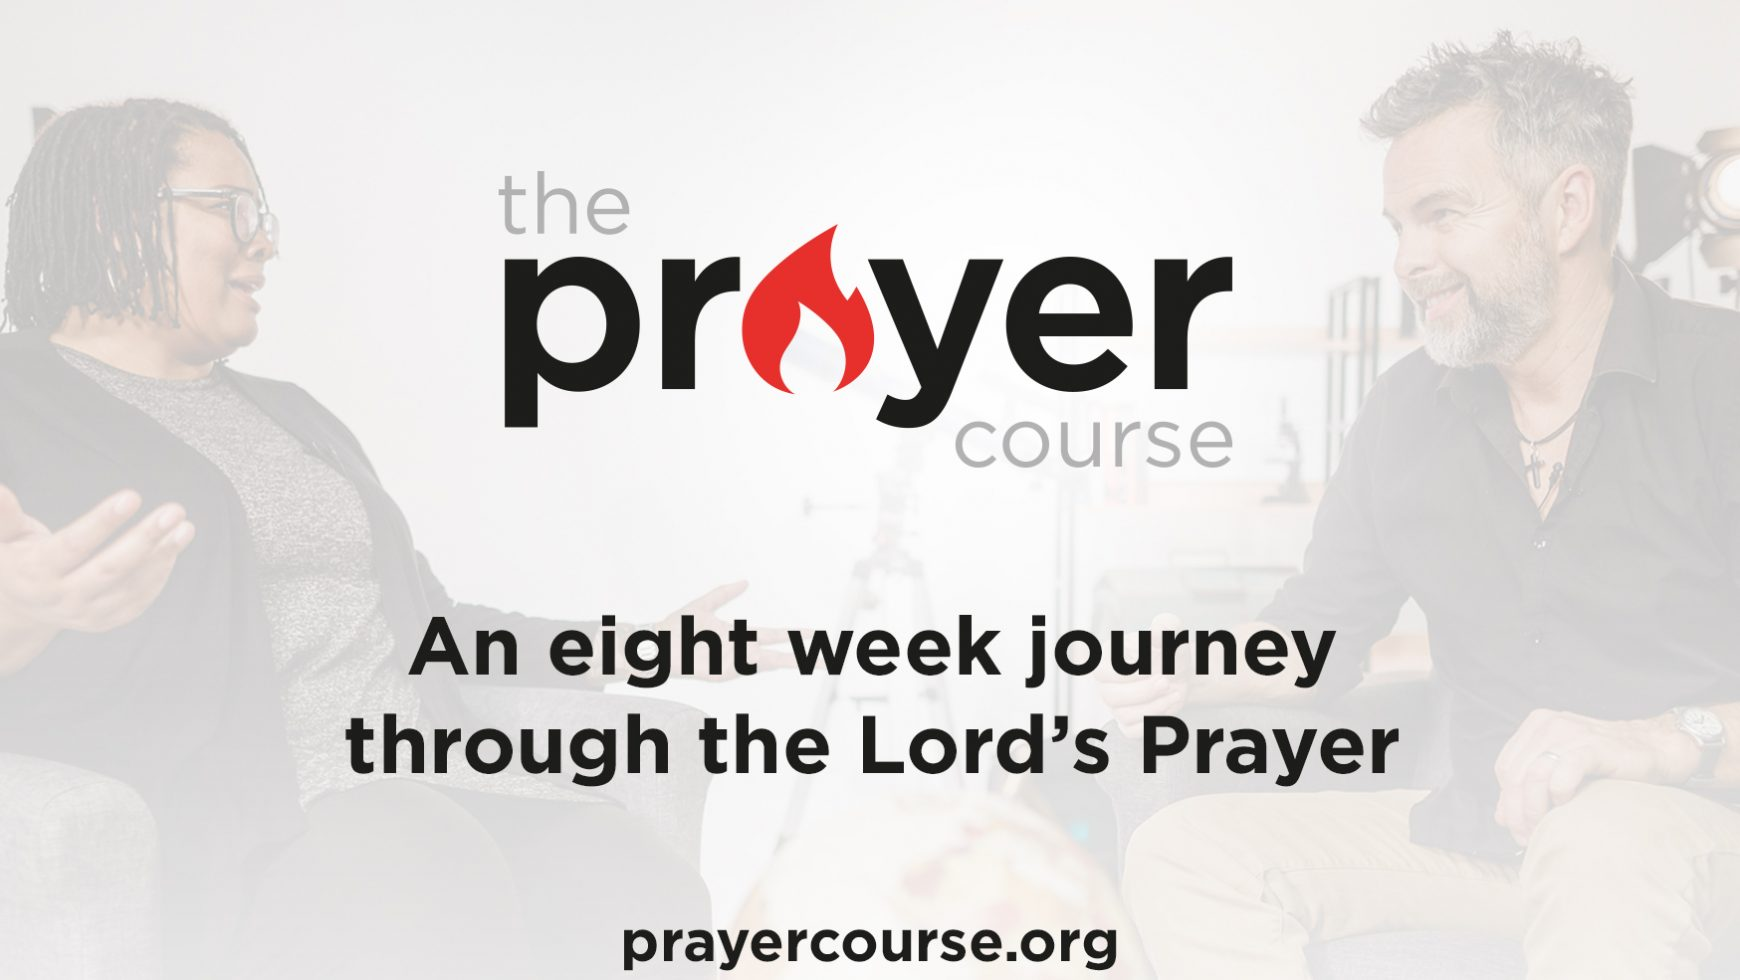 The Prayer Course!